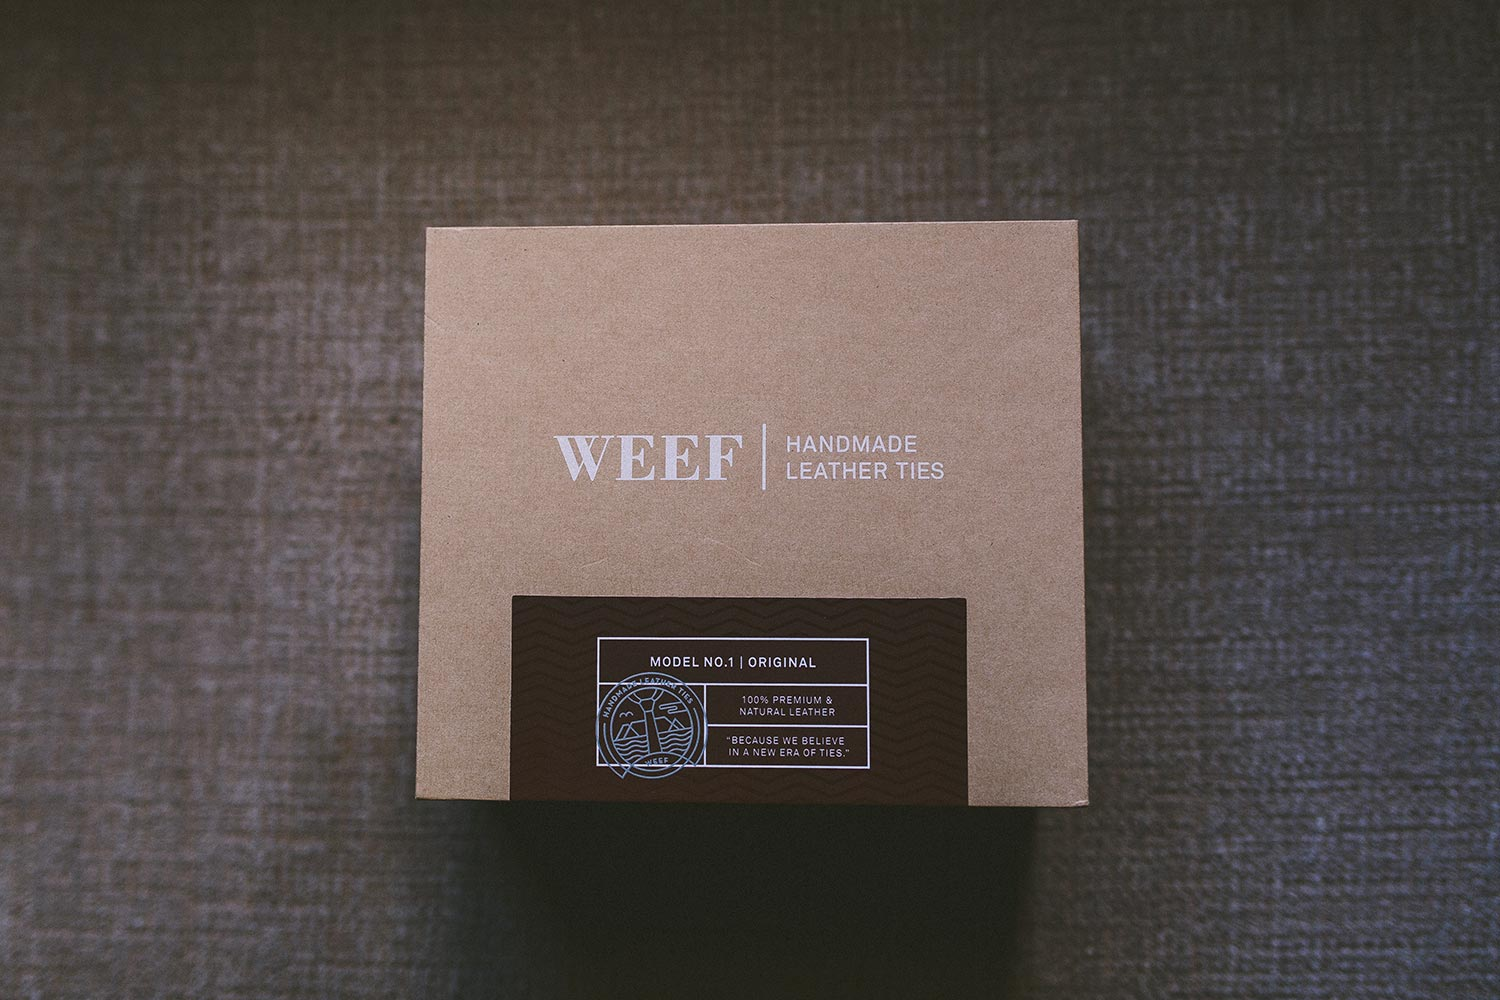 WEEF | Handmade Leather Ties – WEEF Weddings – Make your wedding unique and special